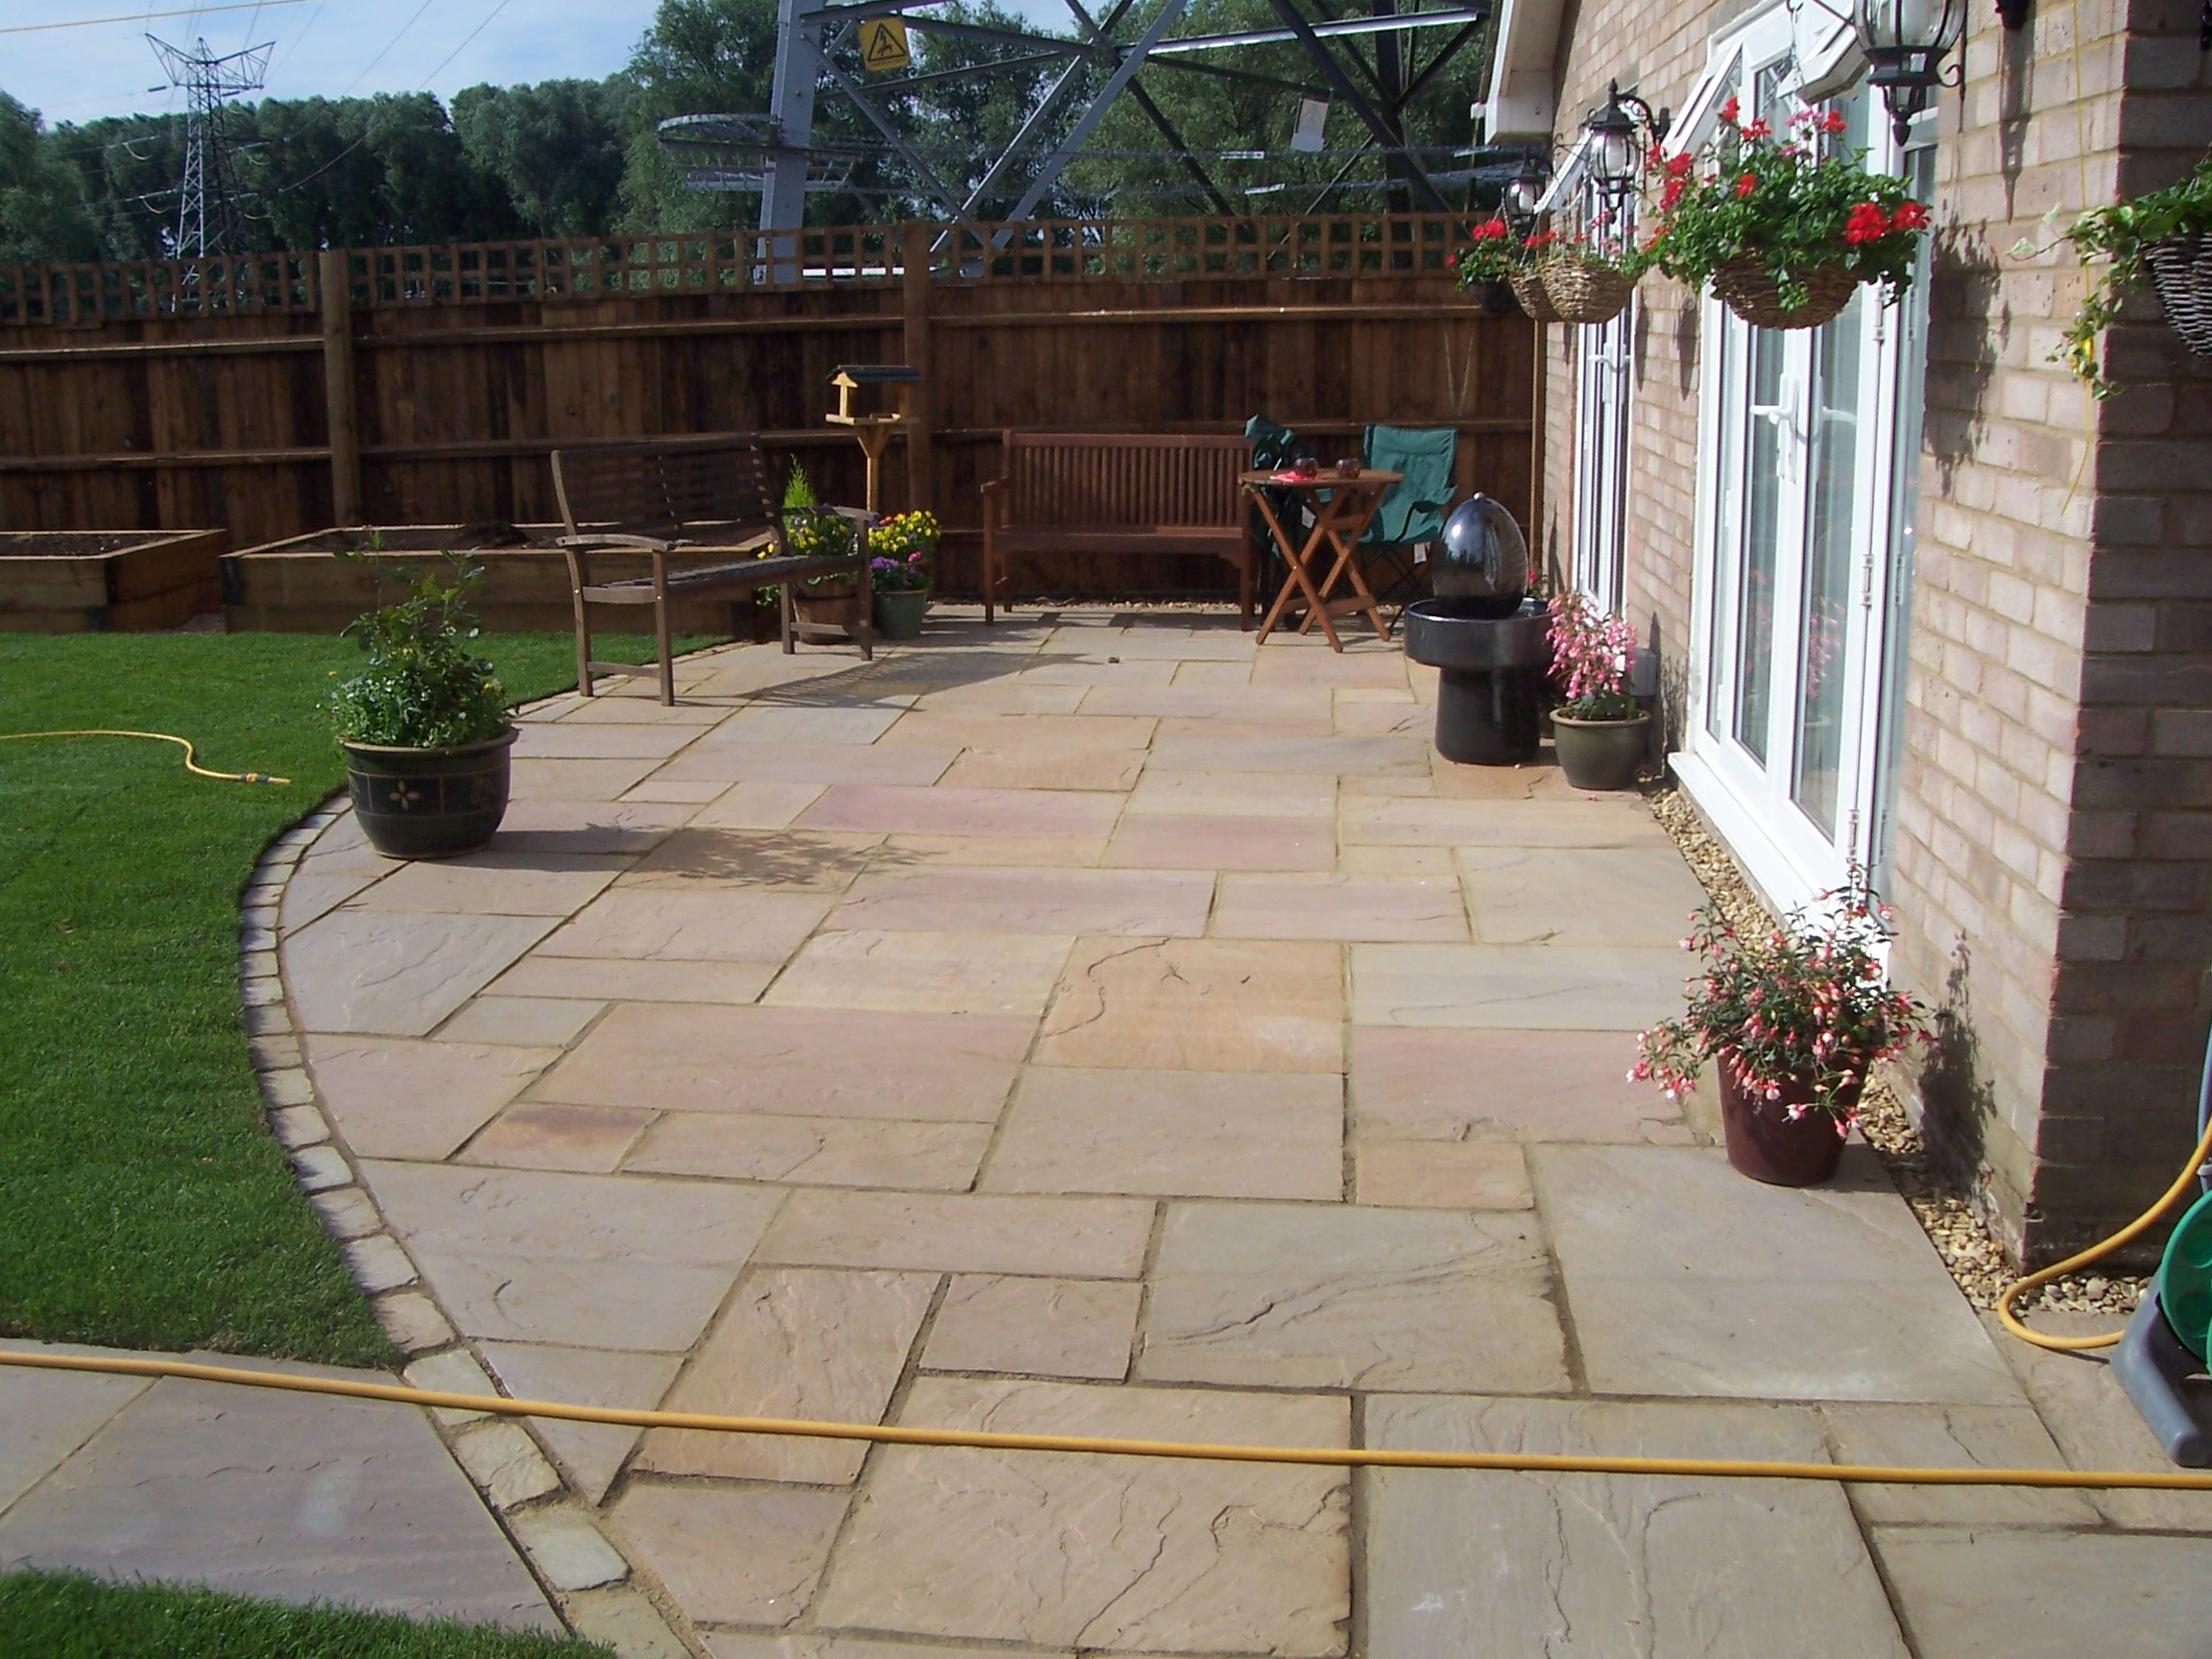 Boyde landscapes bedford block paving and driveways for Paving garden designs